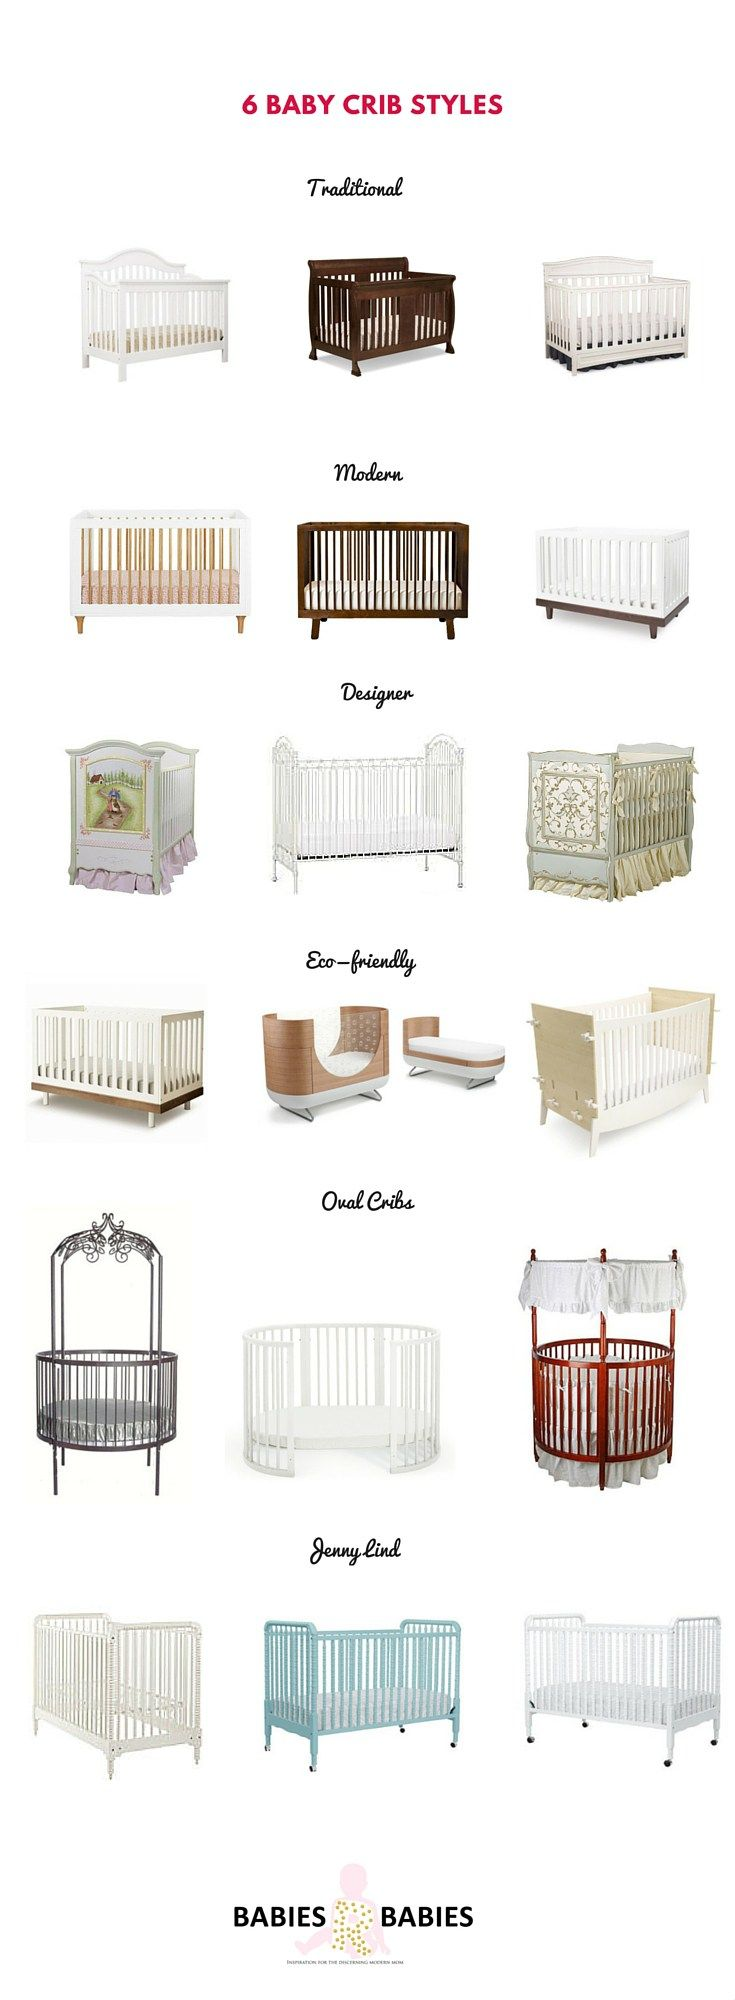 How to choose the best baby crib for the baby.#babycrib #babycribstyles